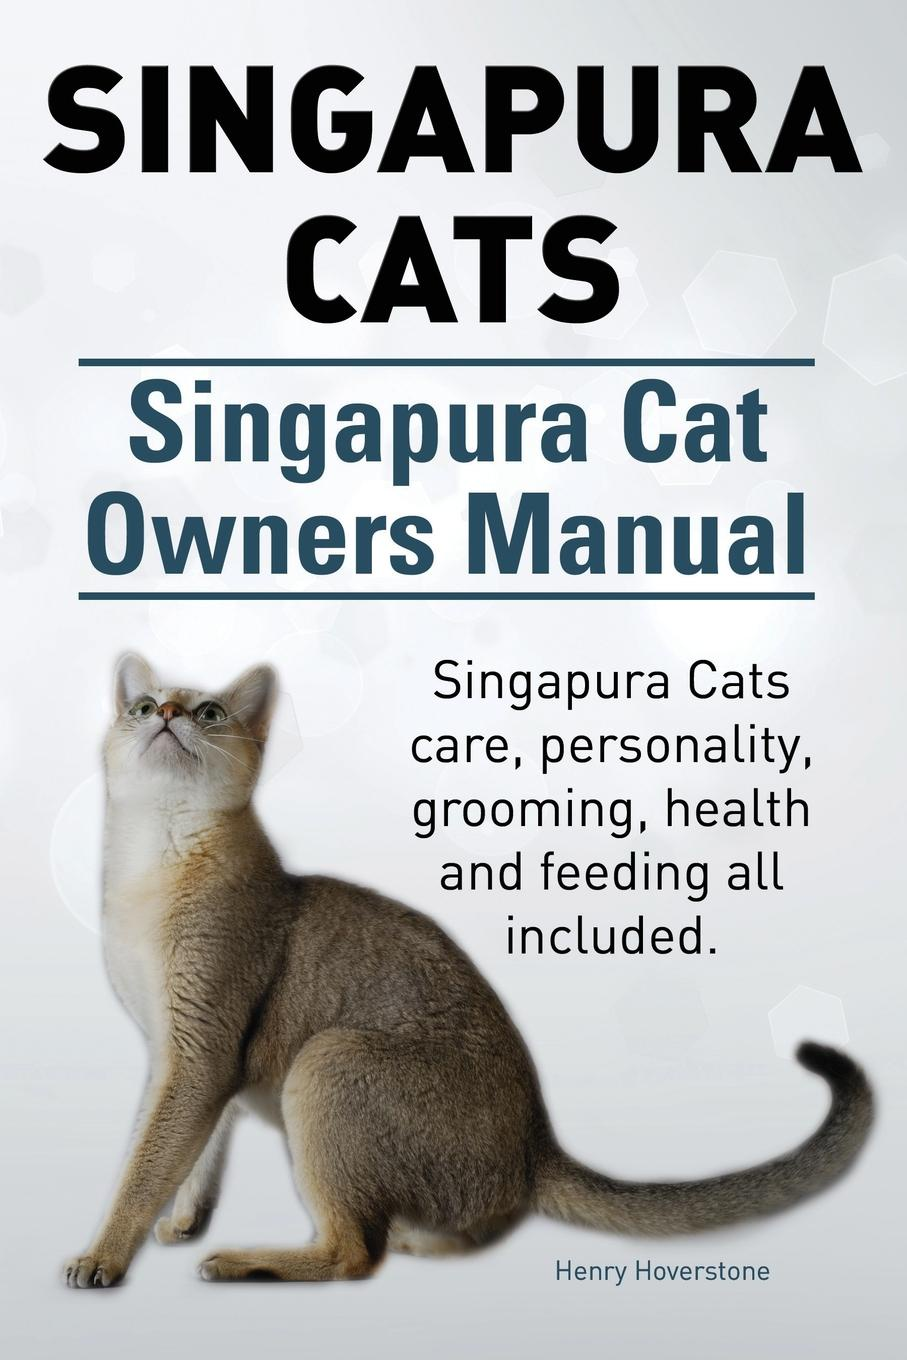 Henry Hoverstone Singapura Cats. Singapura Cat Owners Manual. Singapura Cats care, personality, grooming, health and feeding all included. how to catch a cat